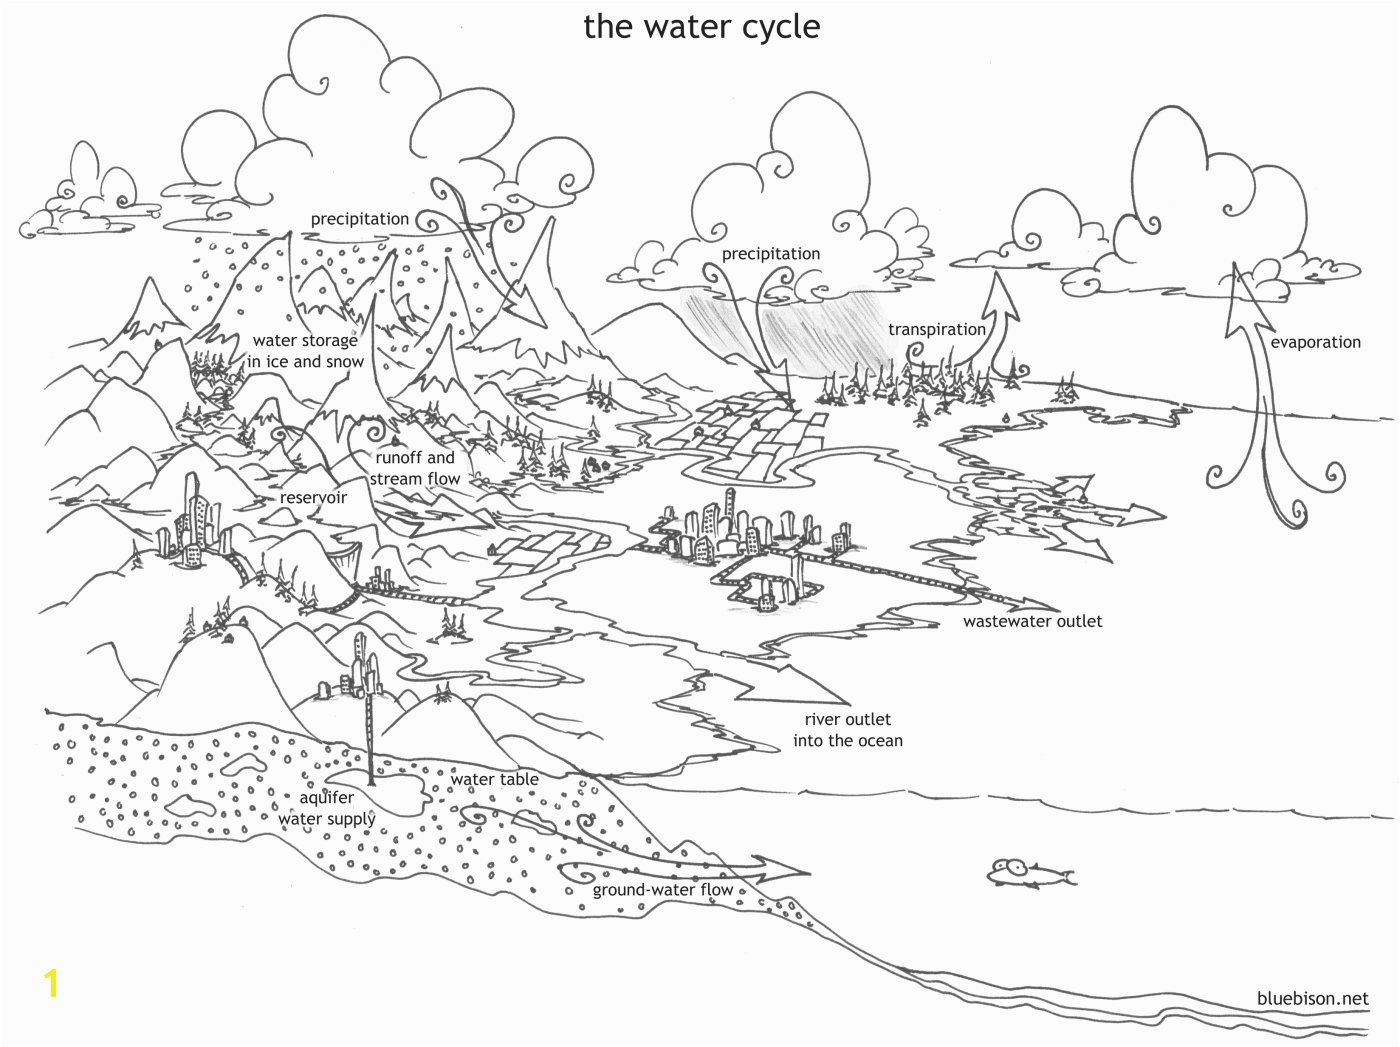 rock cycle coloring sheet revolutionary stream coloring page rock cycle easy diagram gallery design ideas